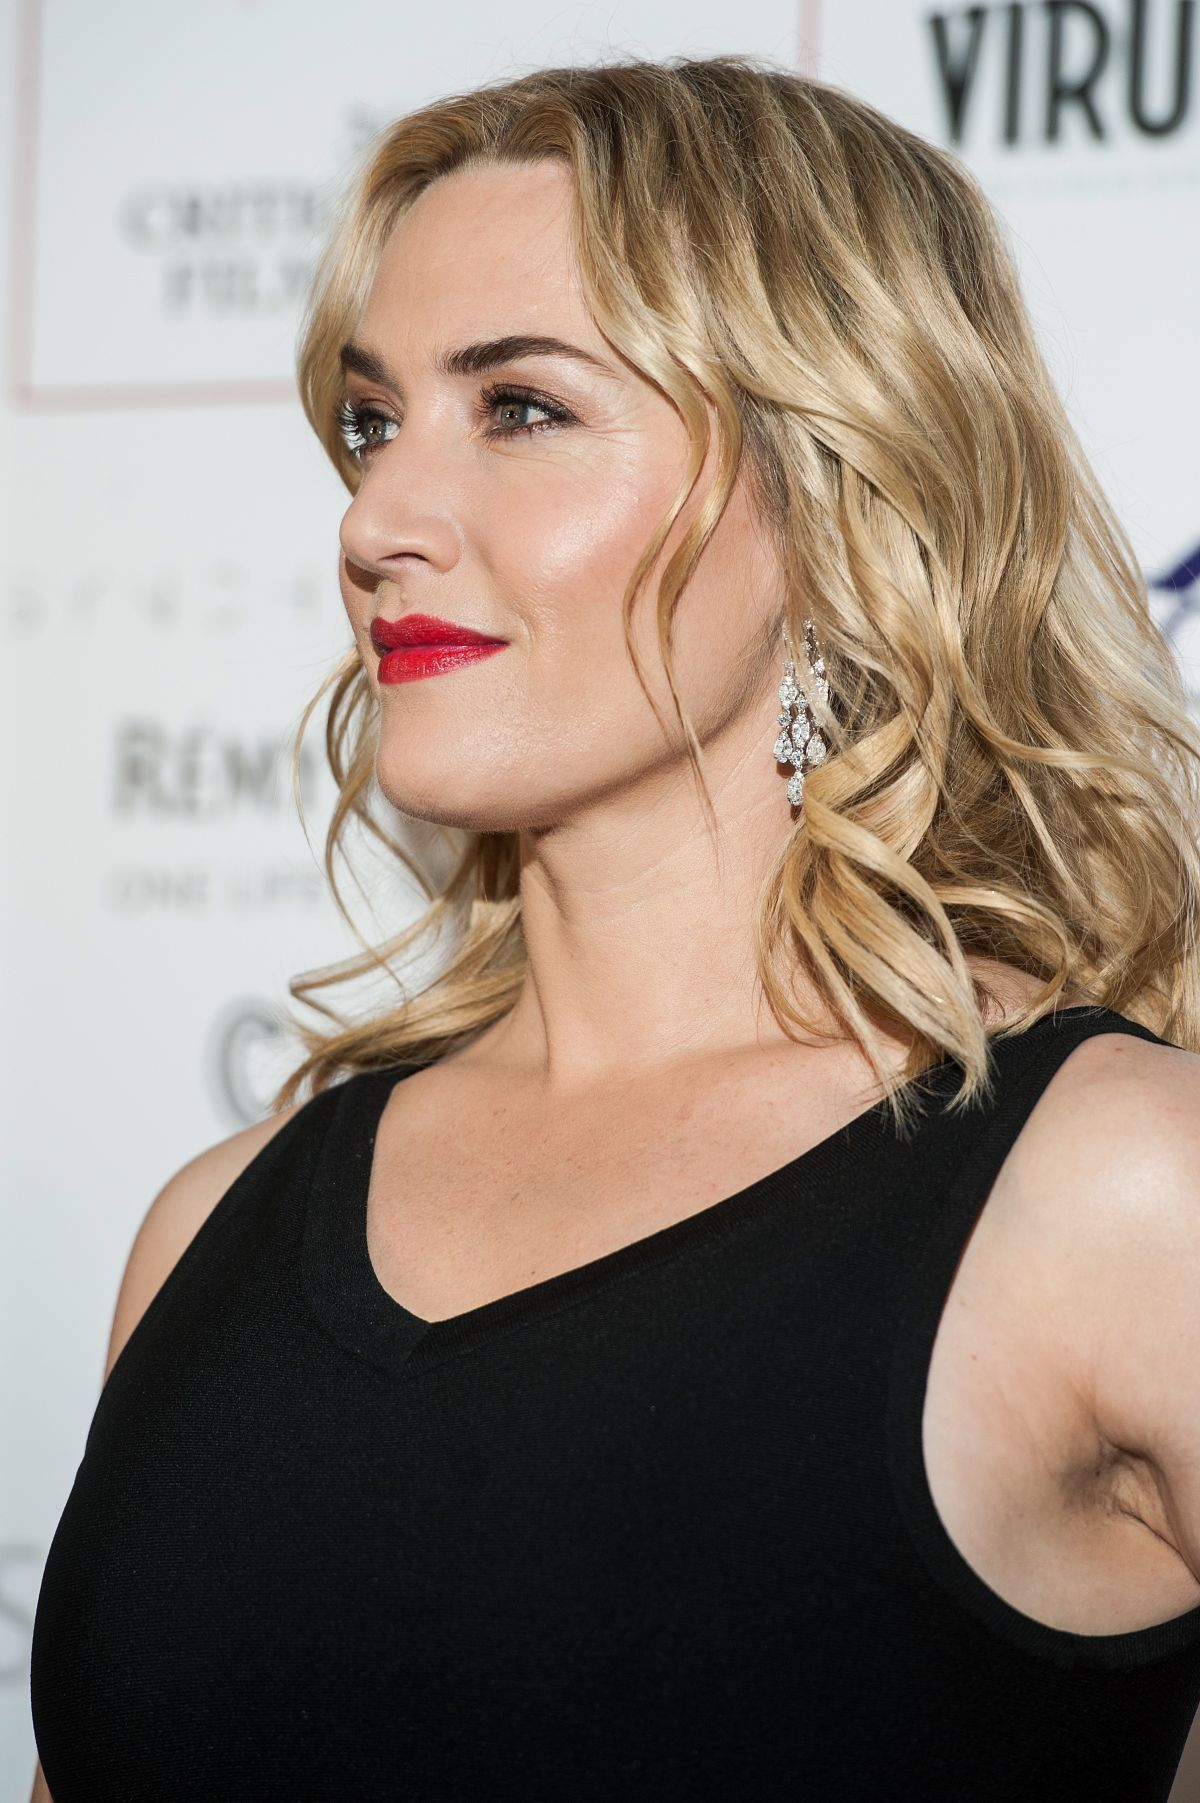 KATE WINSLET At London Critic U2019s Circle Film Awards 01 17